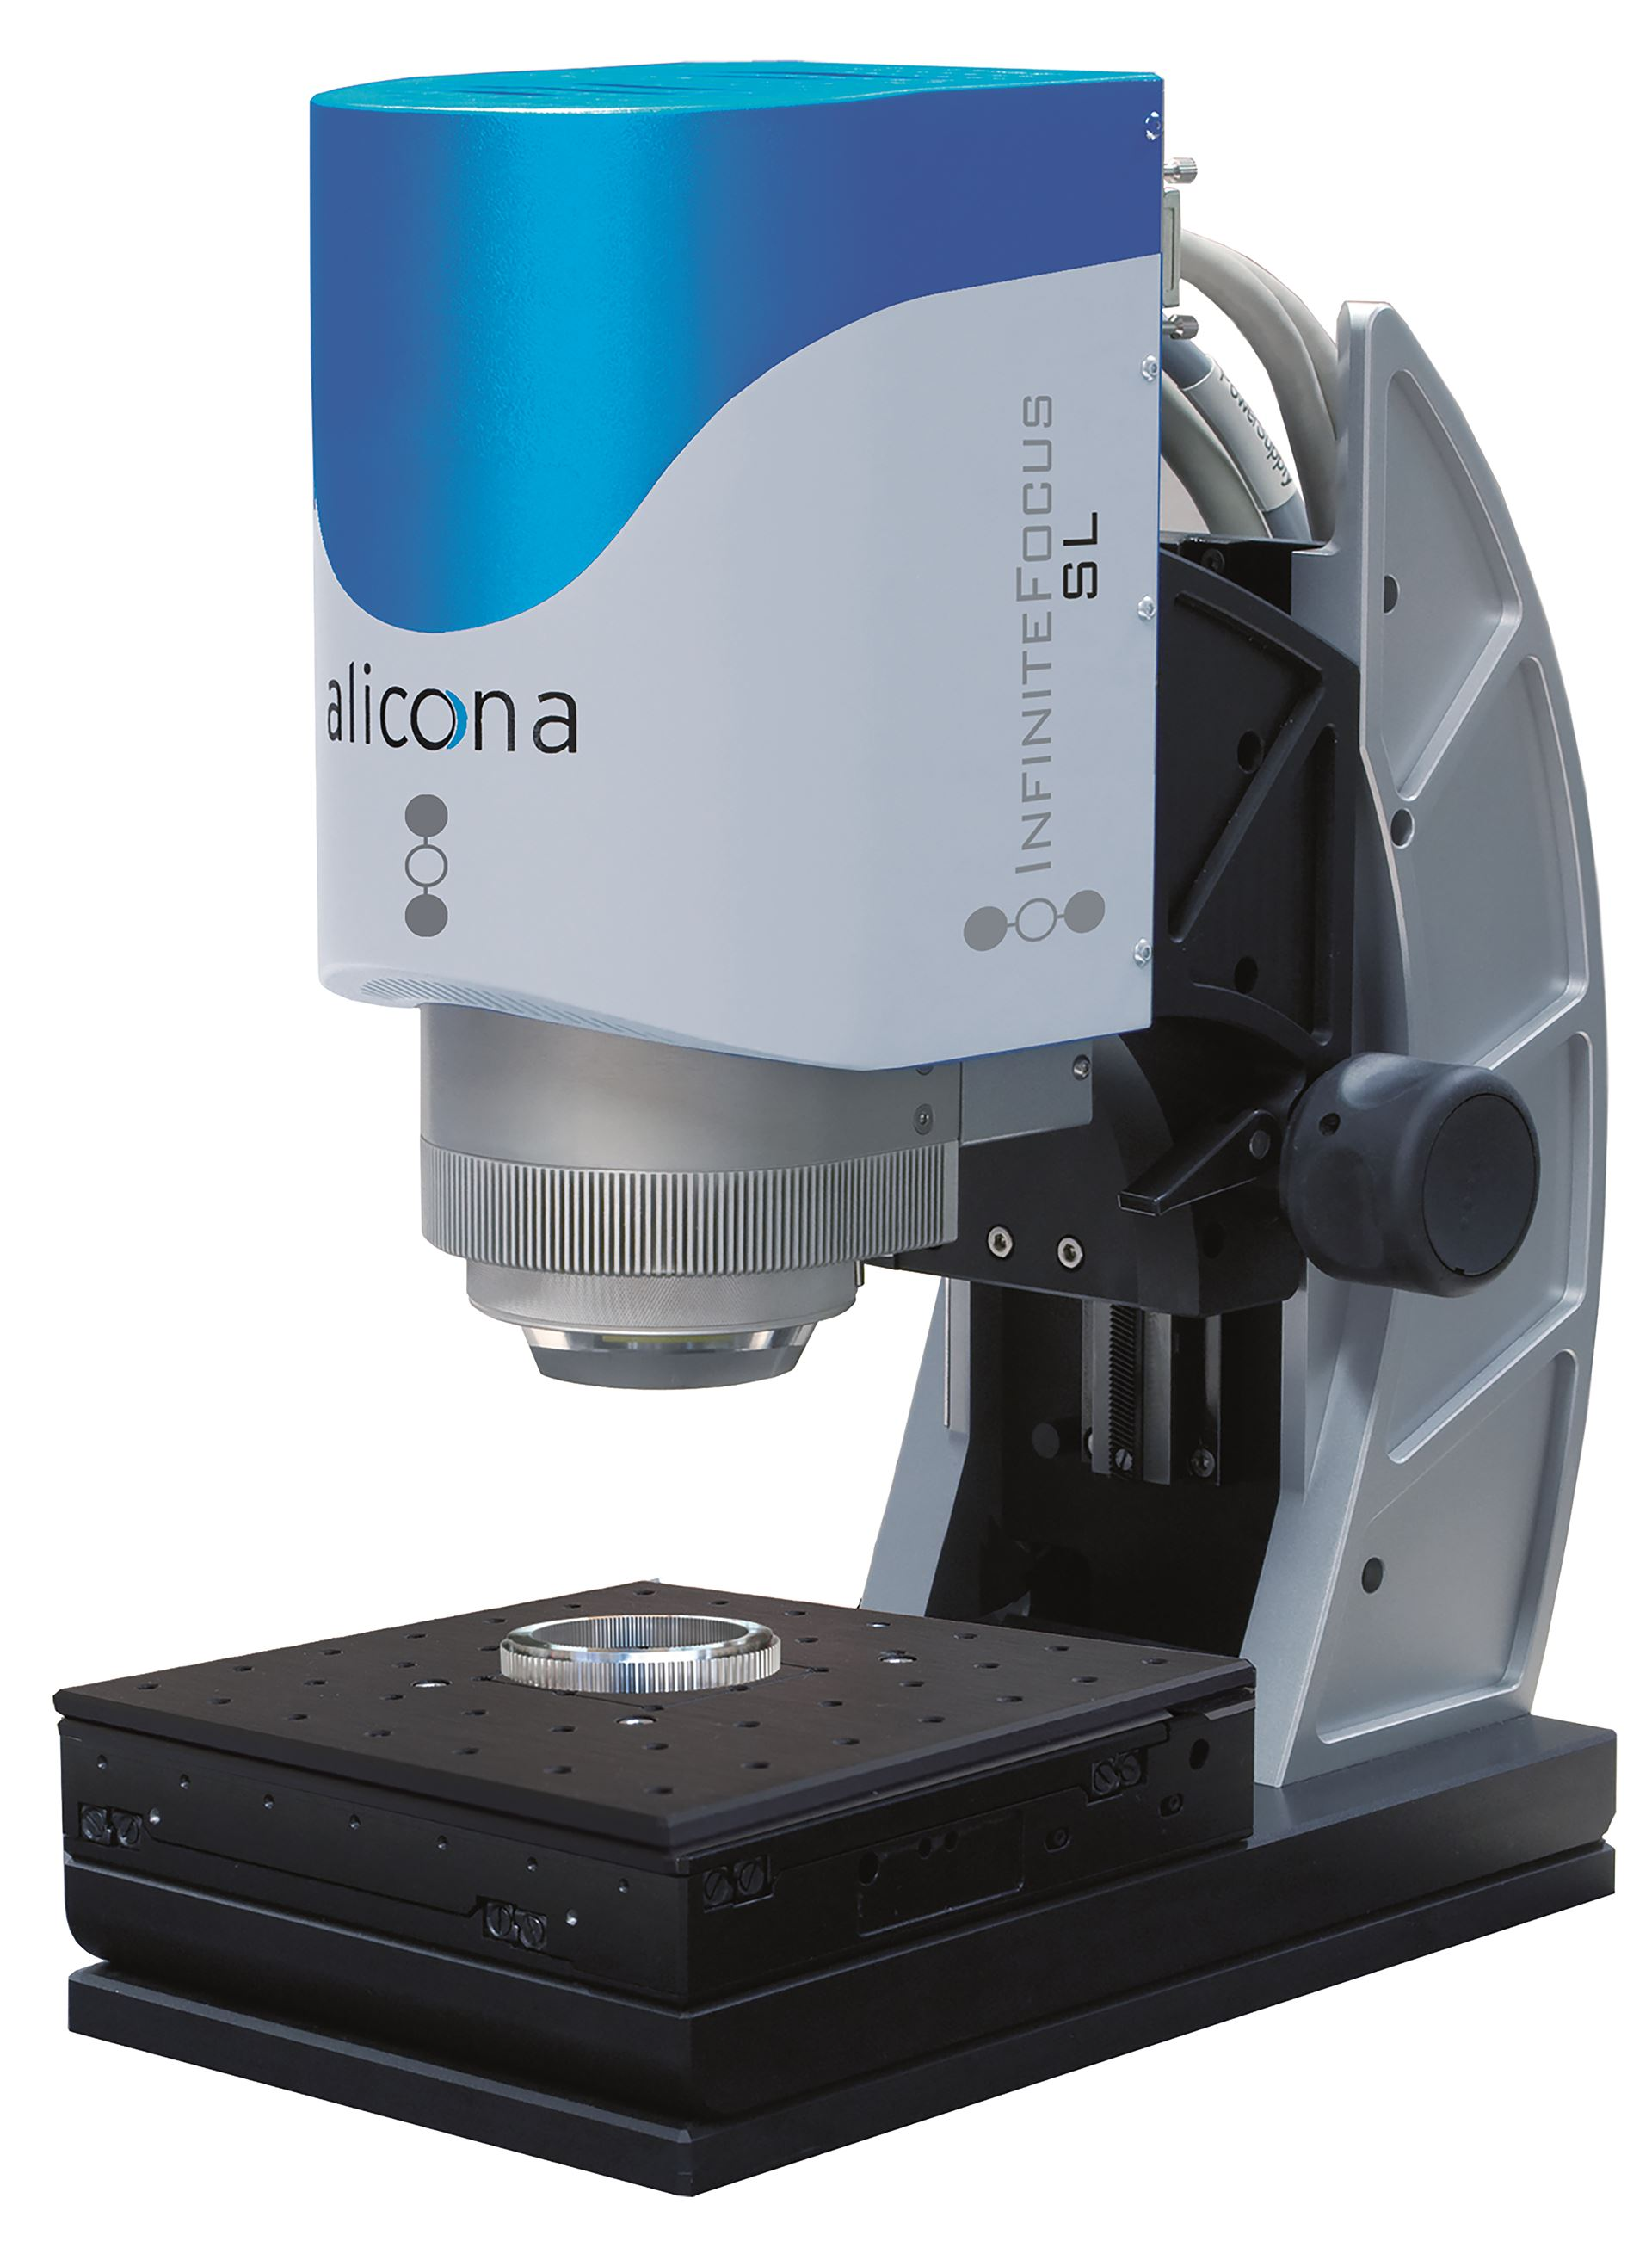 Optical measuring system with new software for automatic segmentation and classification